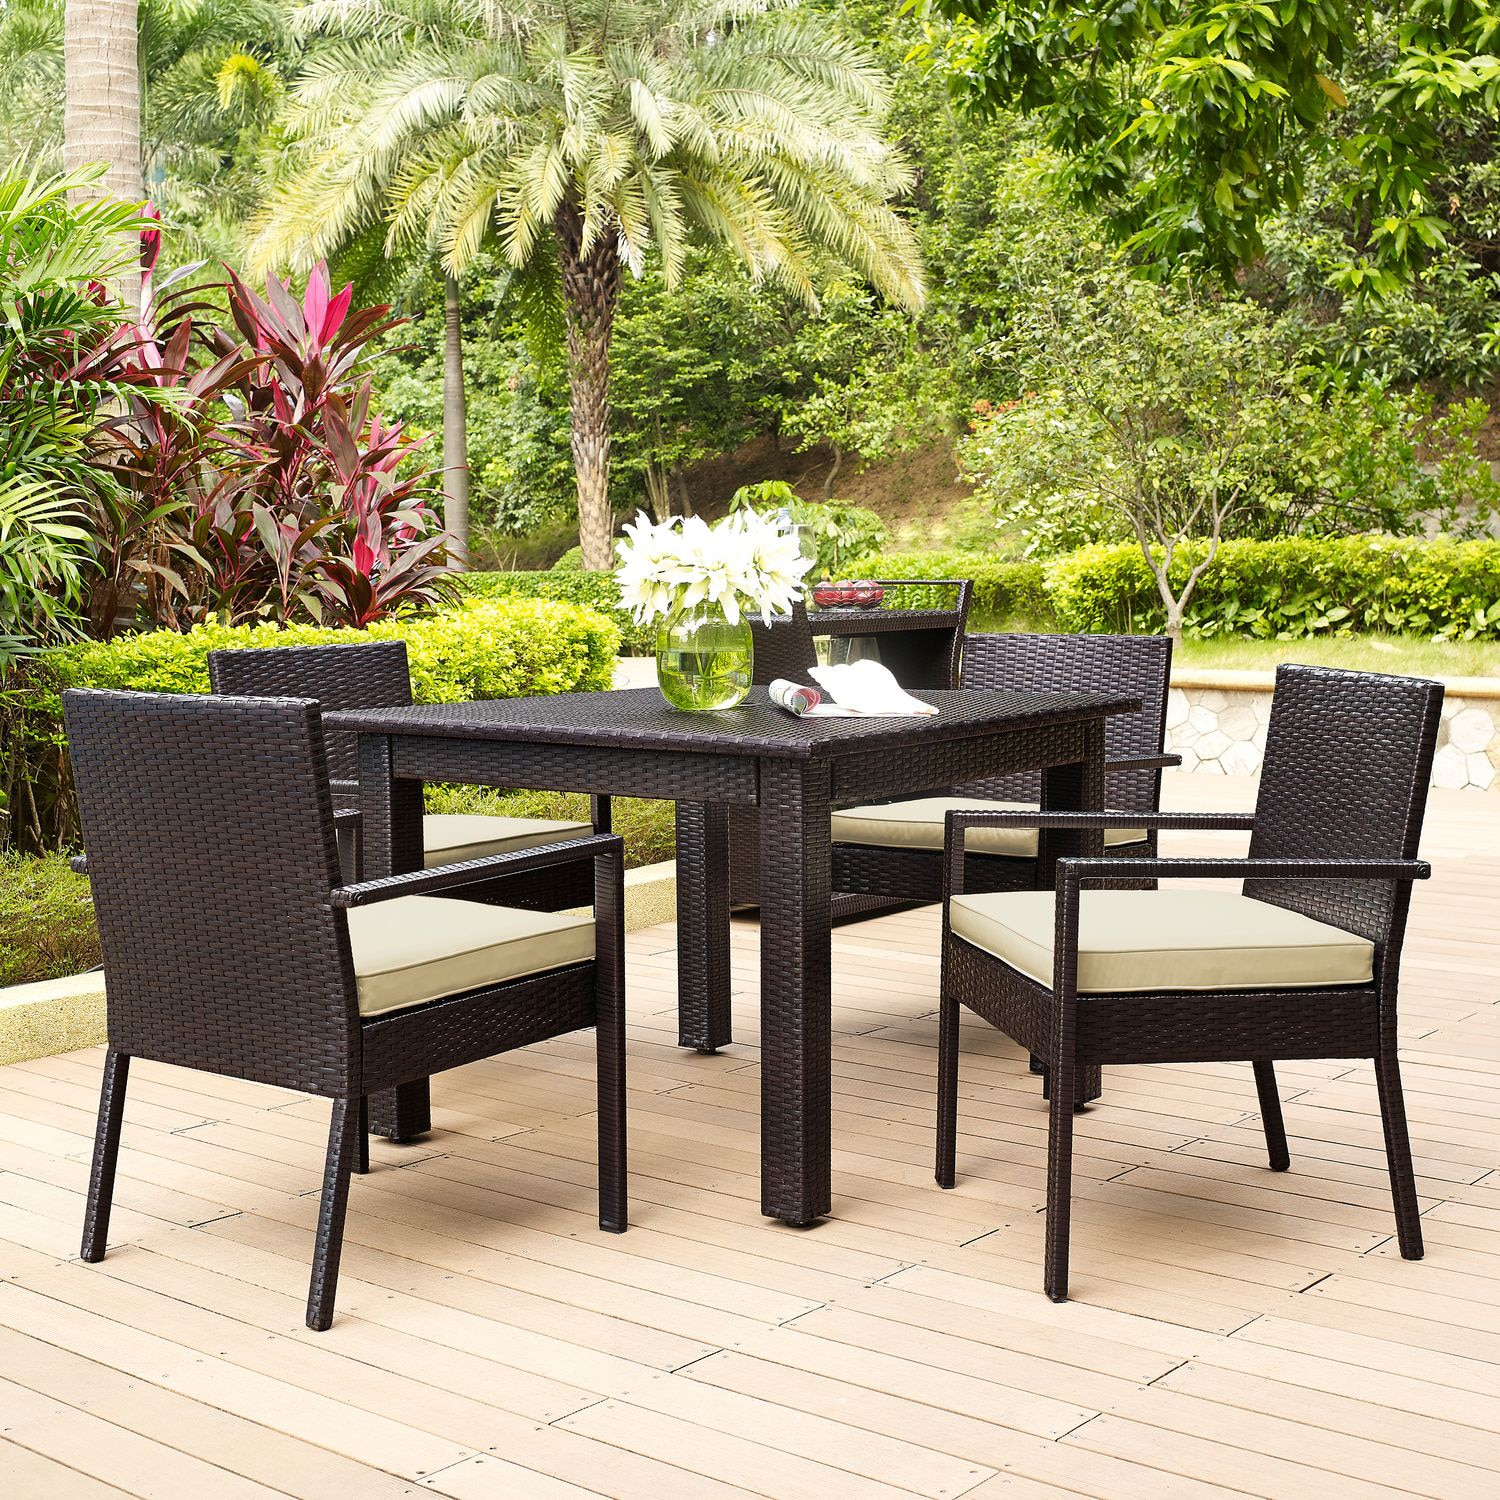 Outdoor Furniture - Aldo Outdoor Table and 4 Arm Chairs Set - Brown